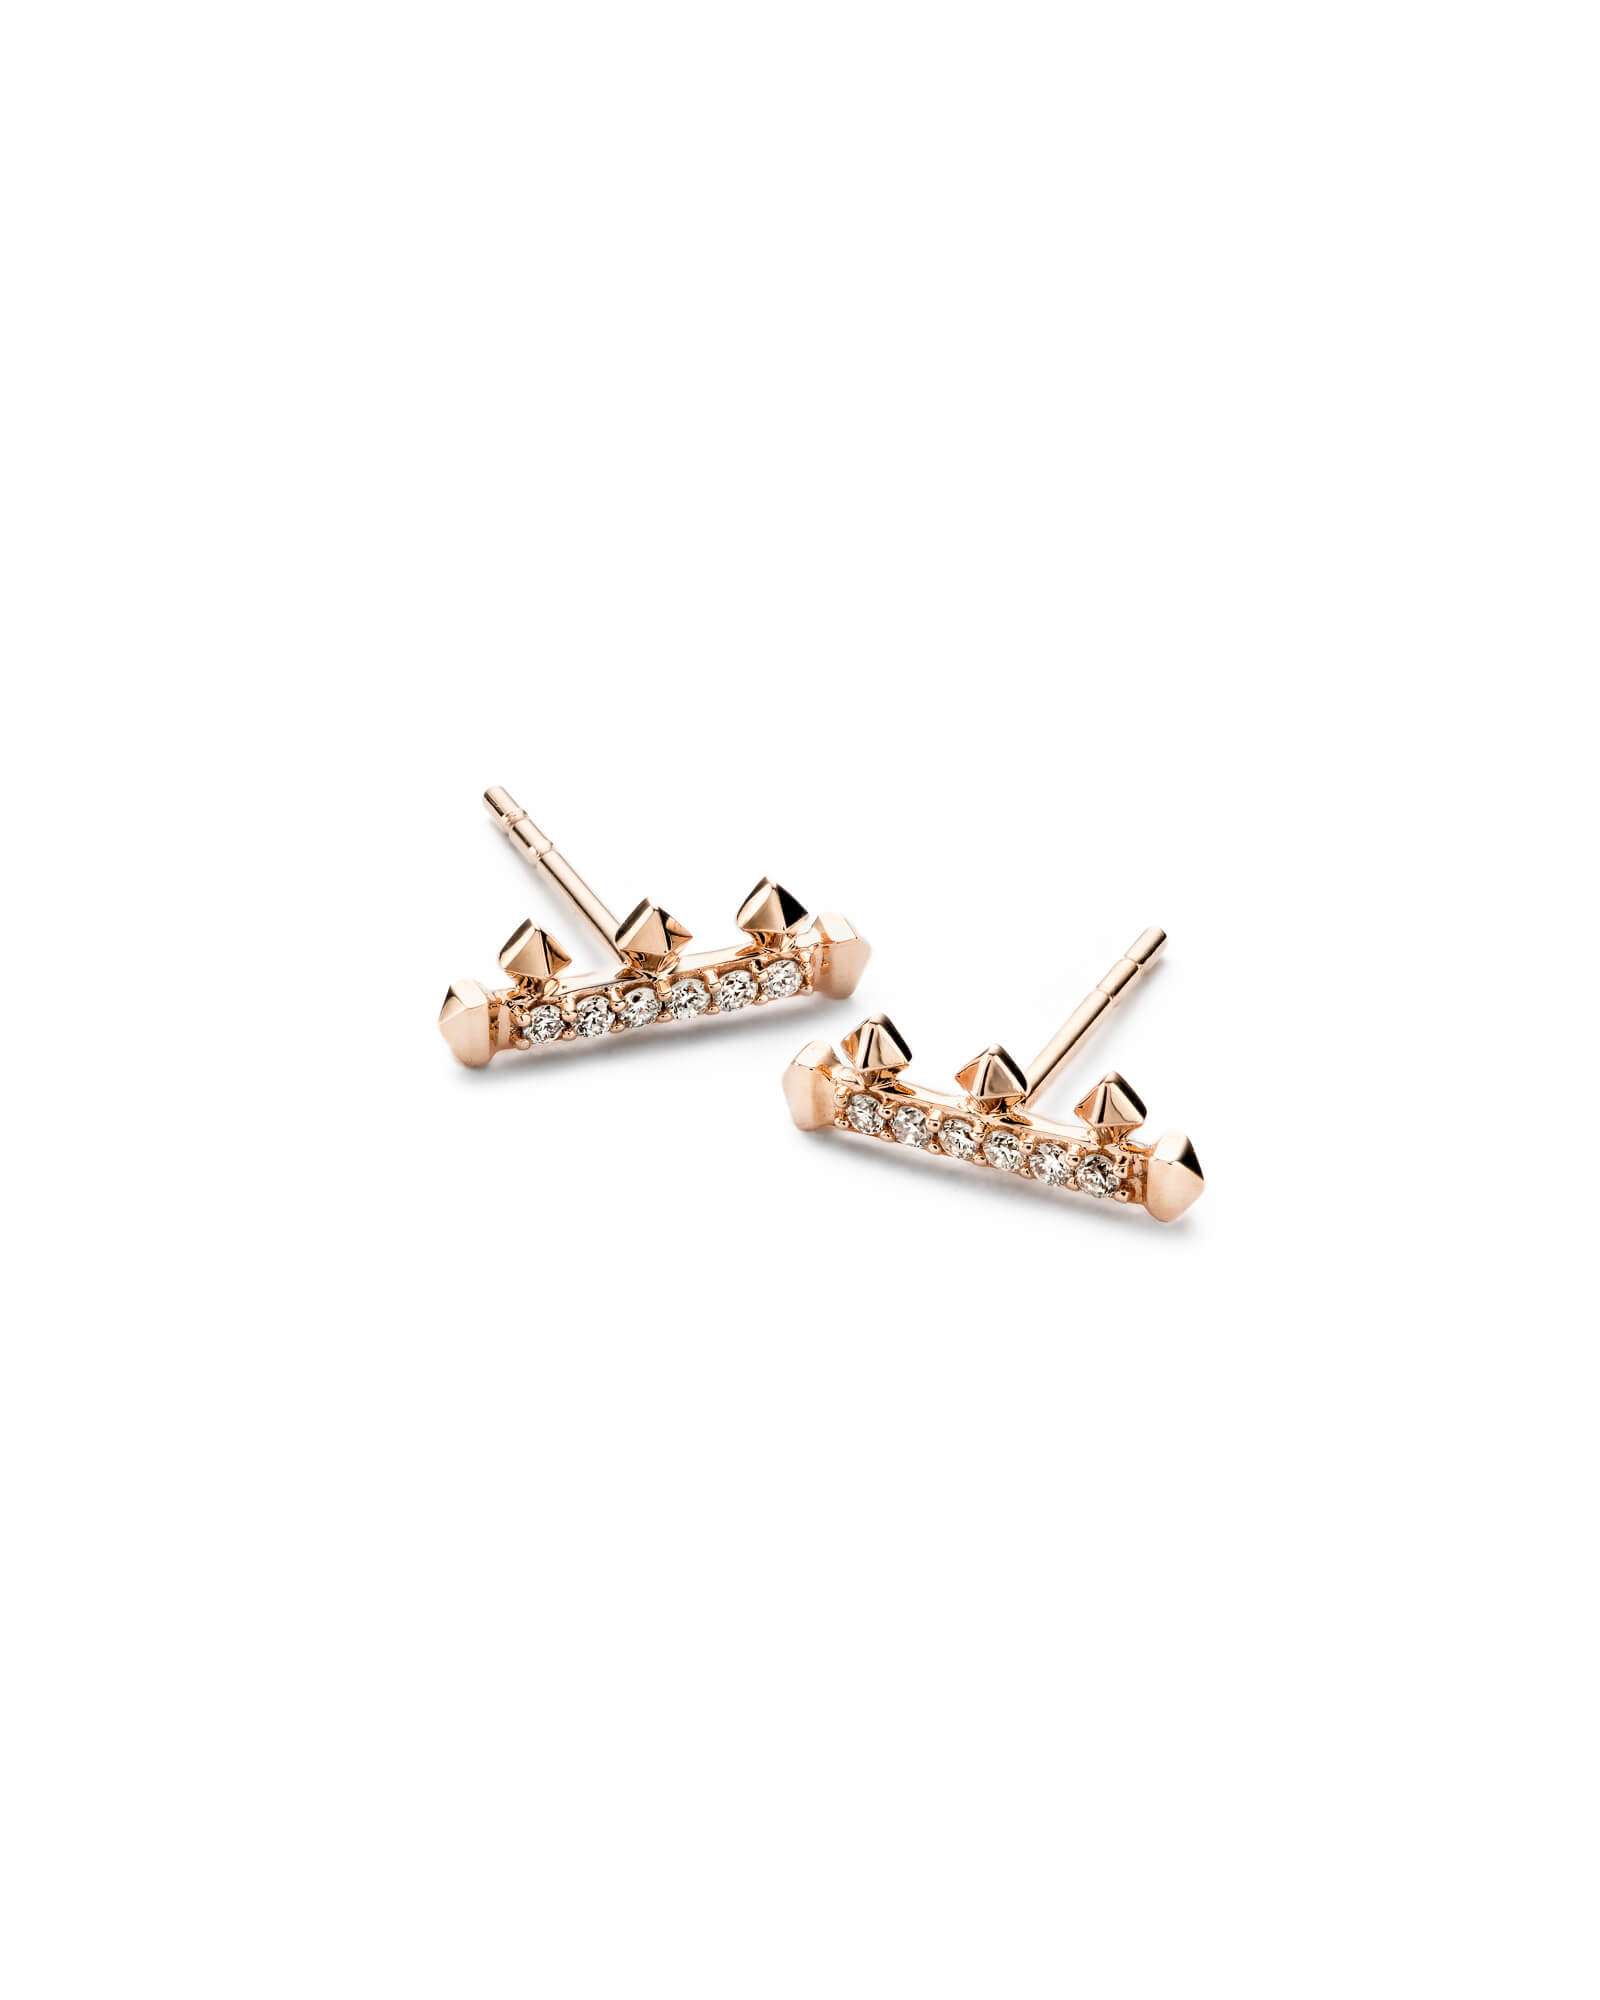 Dorothy Stud Earrings in White Diamond and 14k Rose Gold